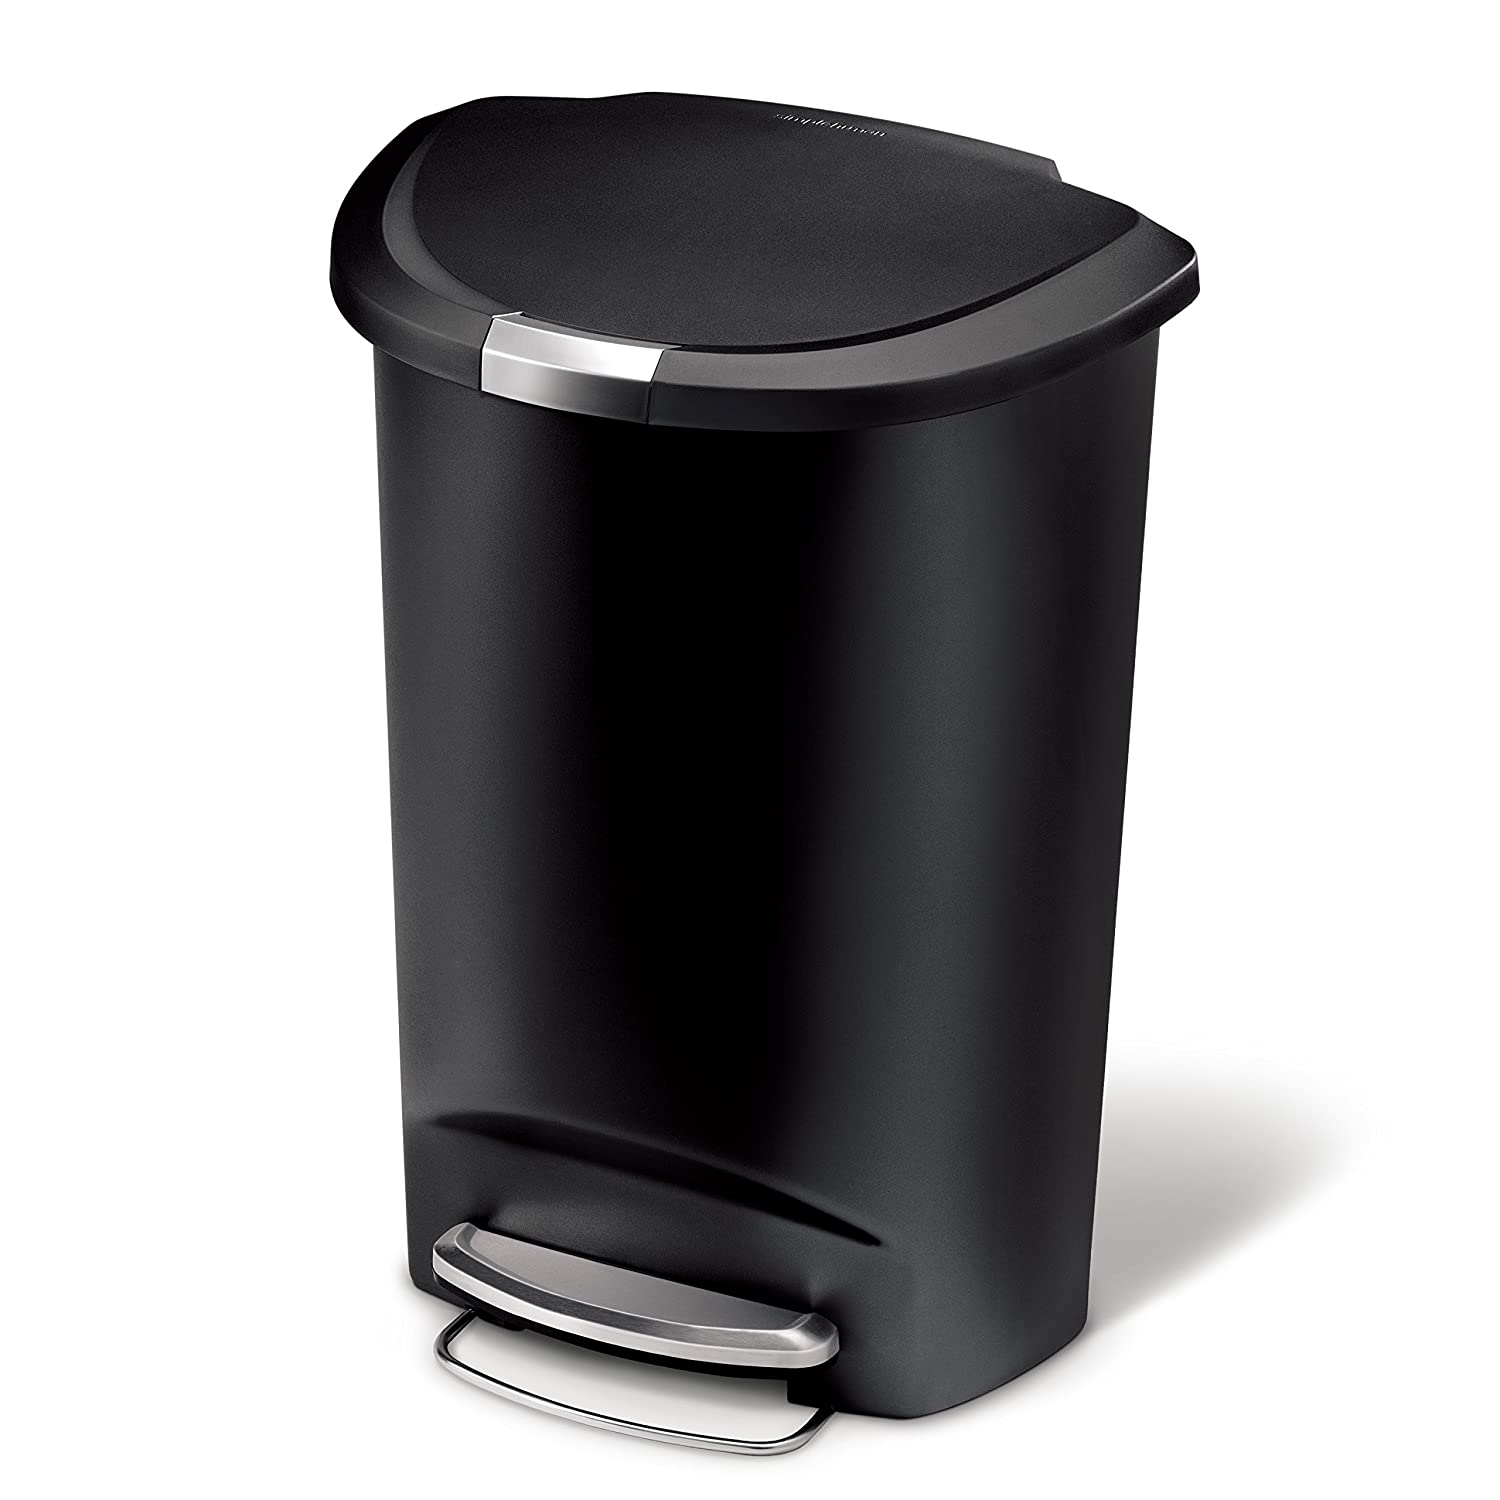 simplehuman Semi-Round Step Trash Can, Black Plastic, 50 L / 13 Gal